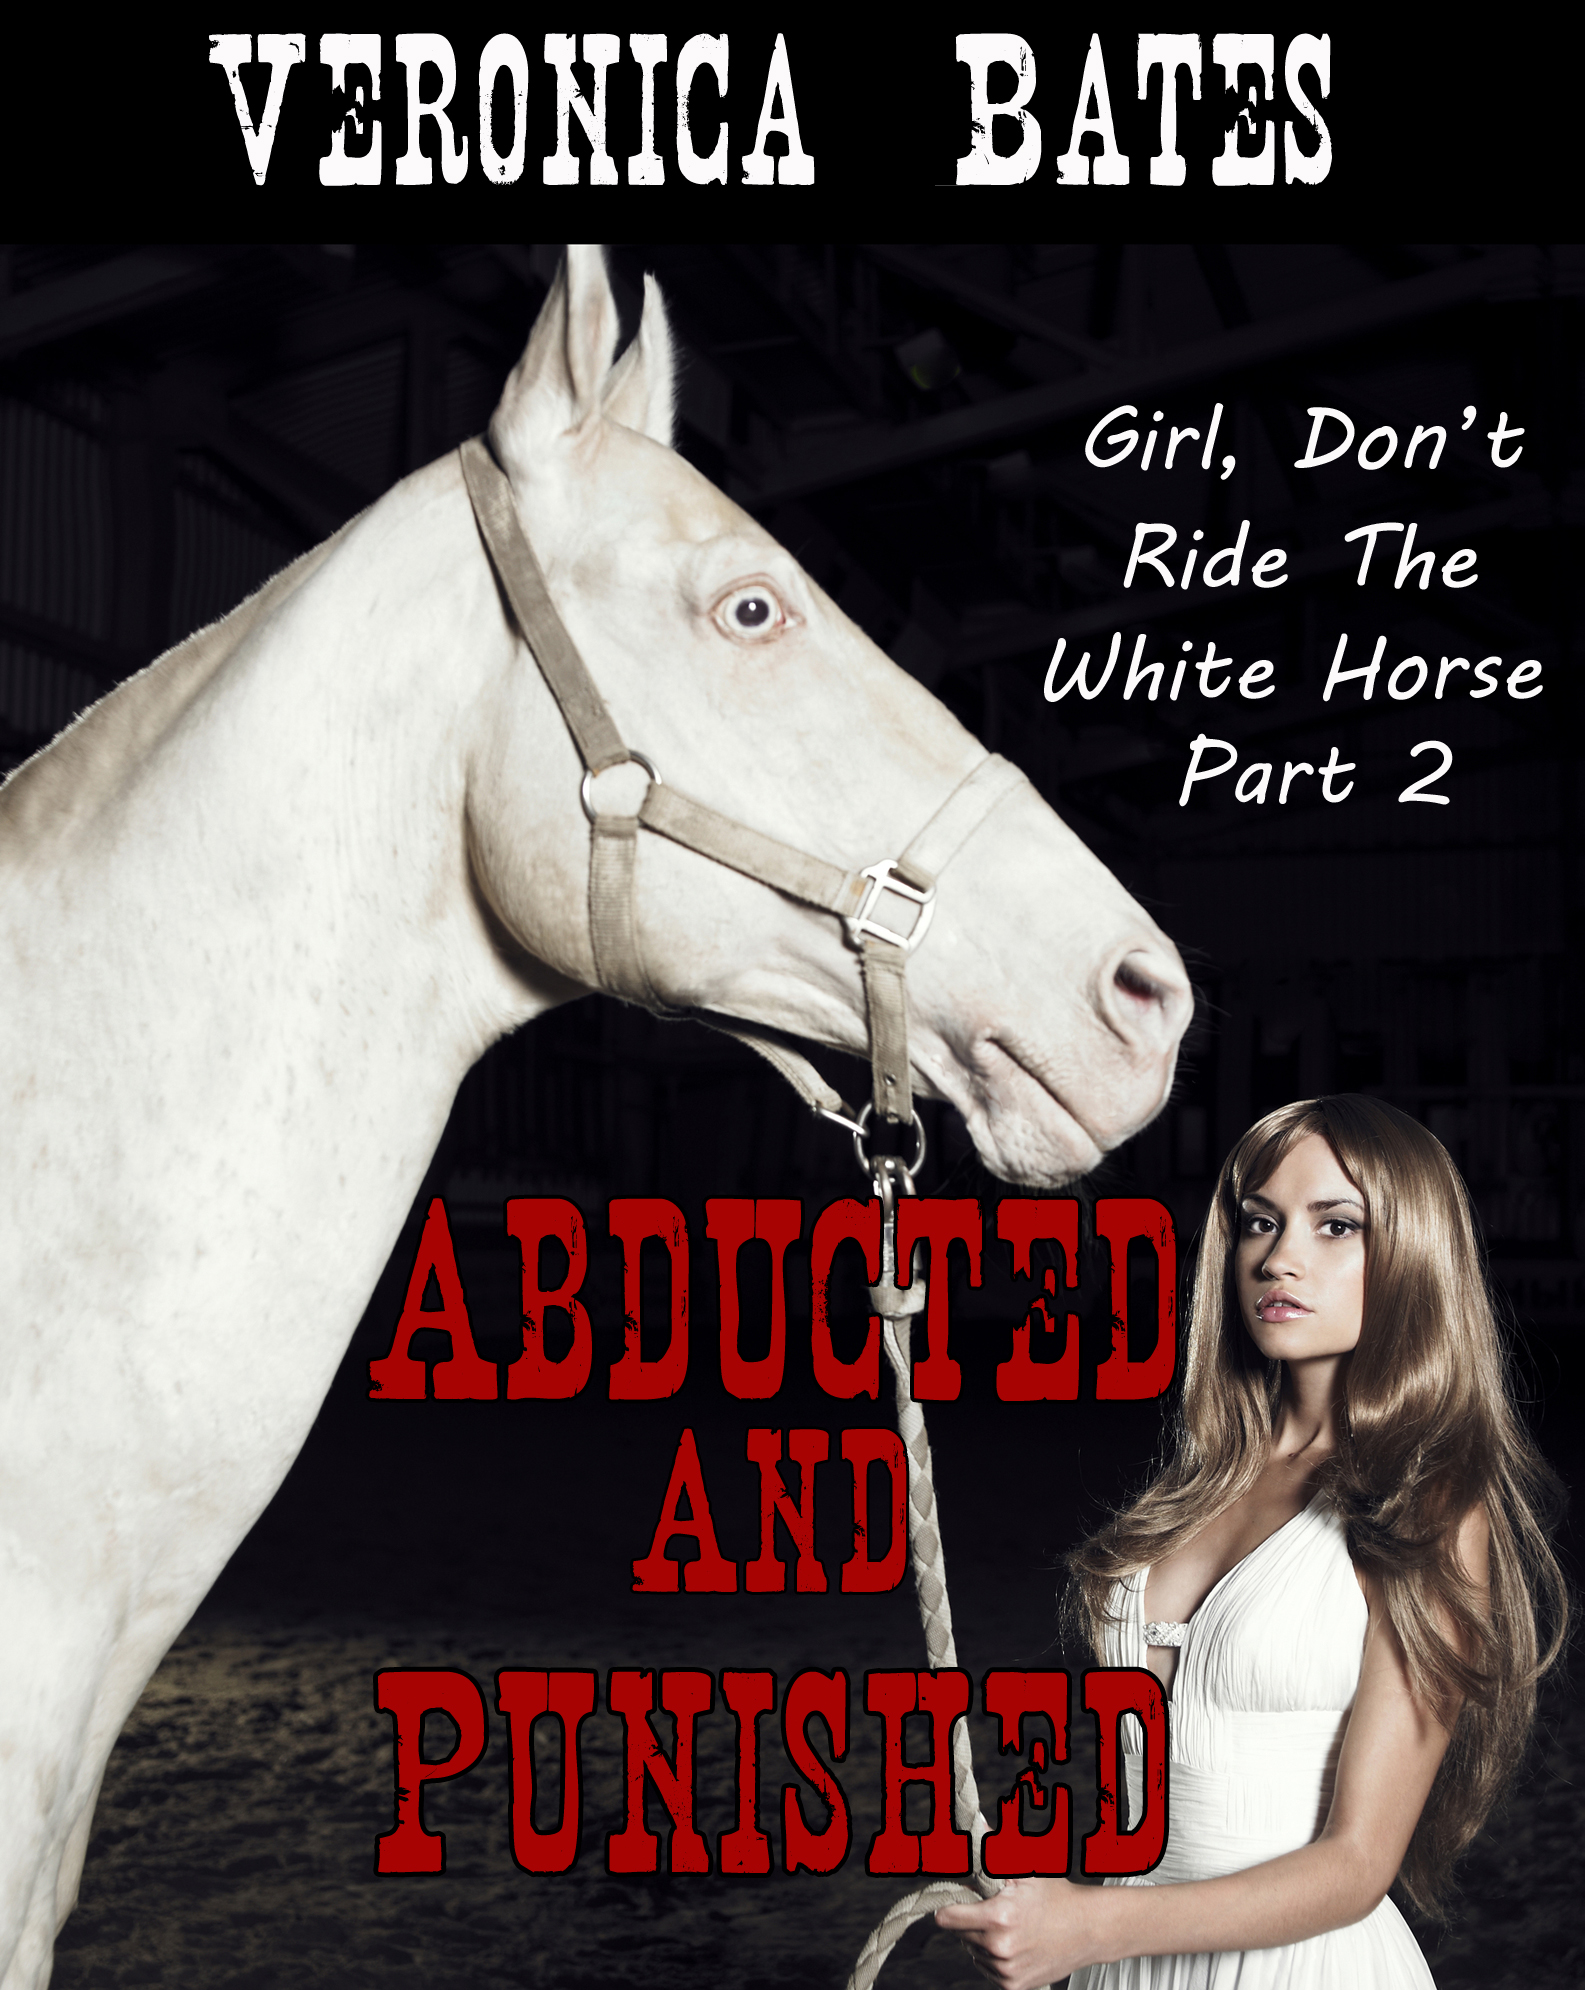 Girl, Don't Ride The White Horse, Part 2: Abducted And Punished